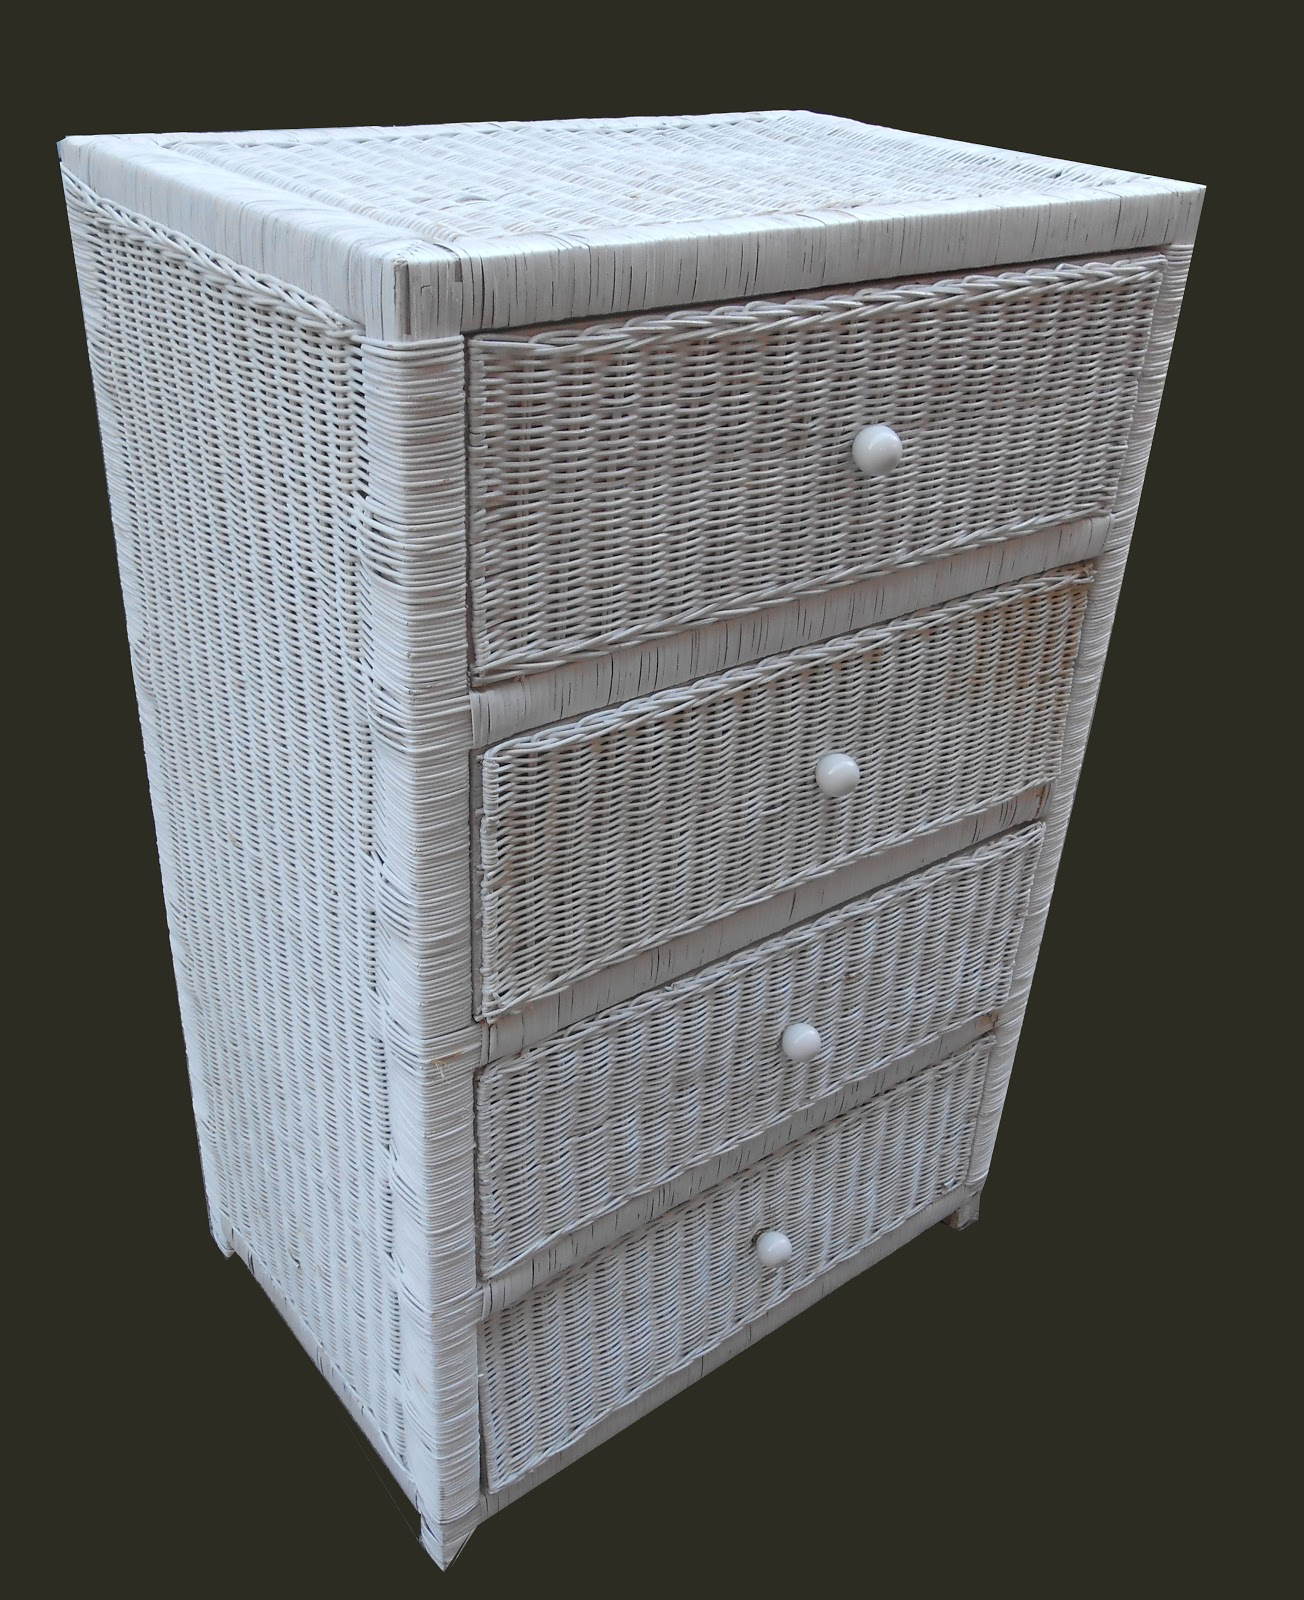 uhuru furniture collectibles white wicker chest of drawers sold. Black Bedroom Furniture Sets. Home Design Ideas